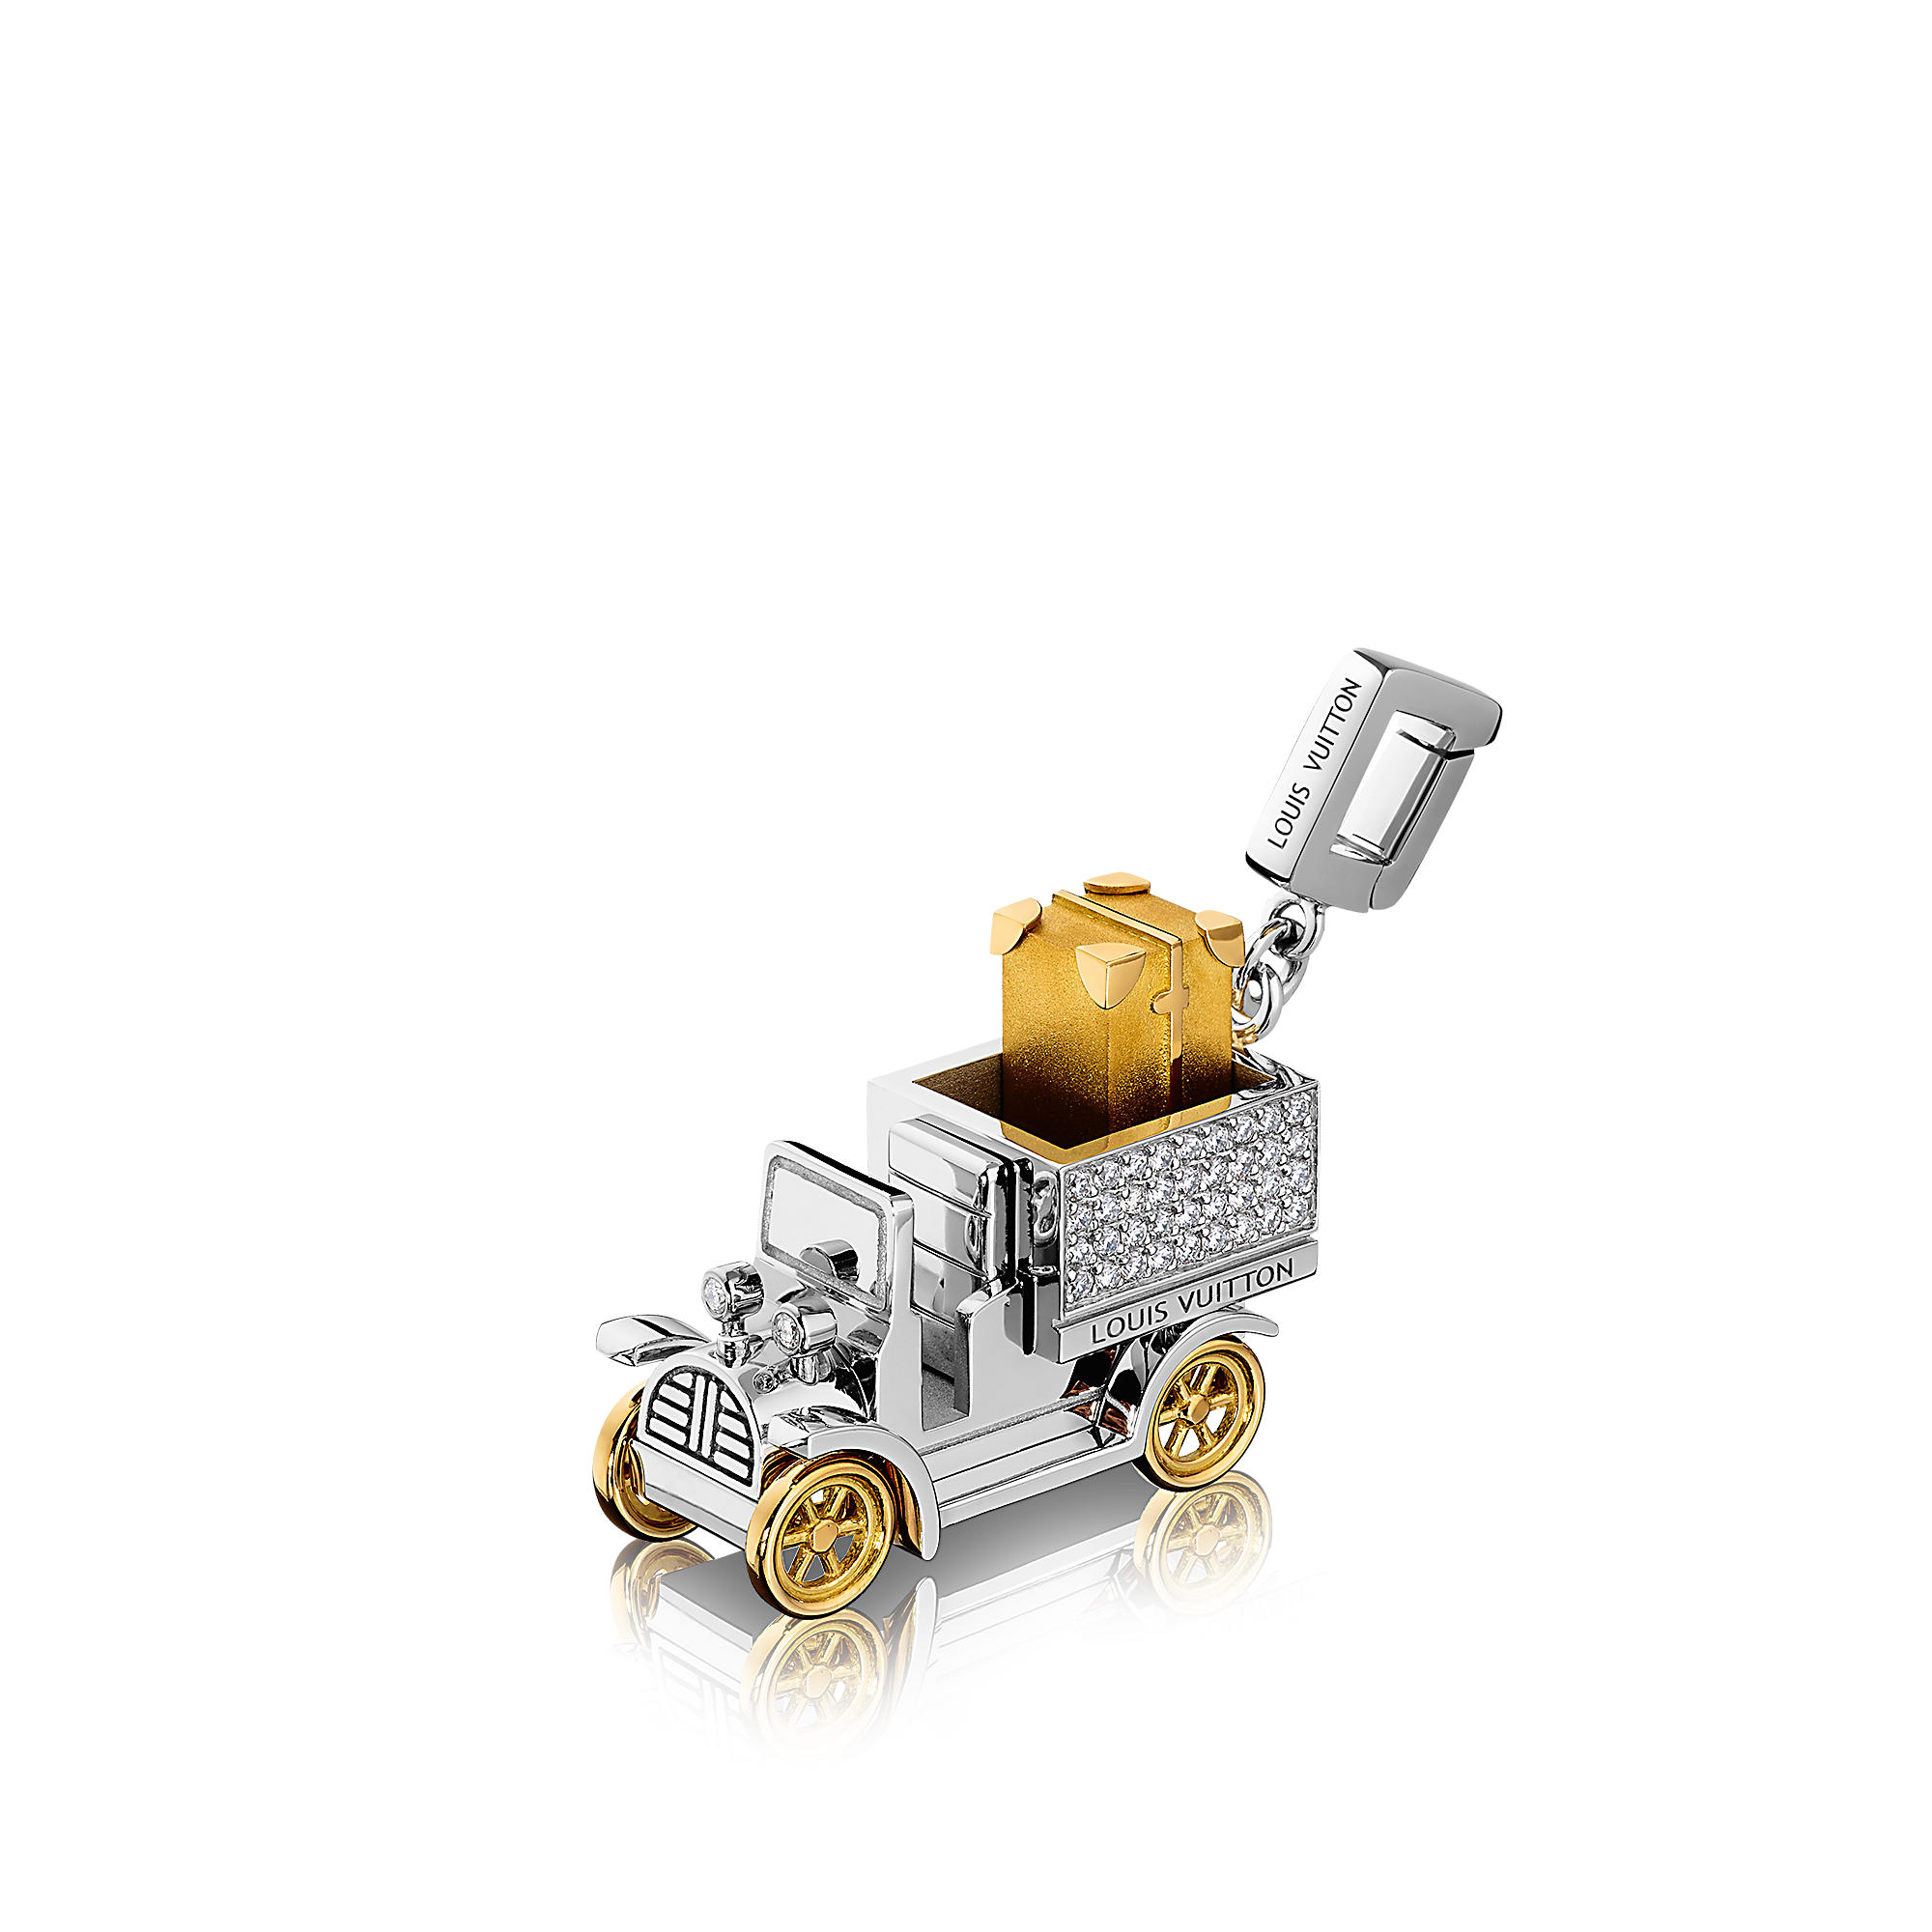 Louis Vuitton Q93313 Charm Automobile,oro bianco e giallo e diamanti